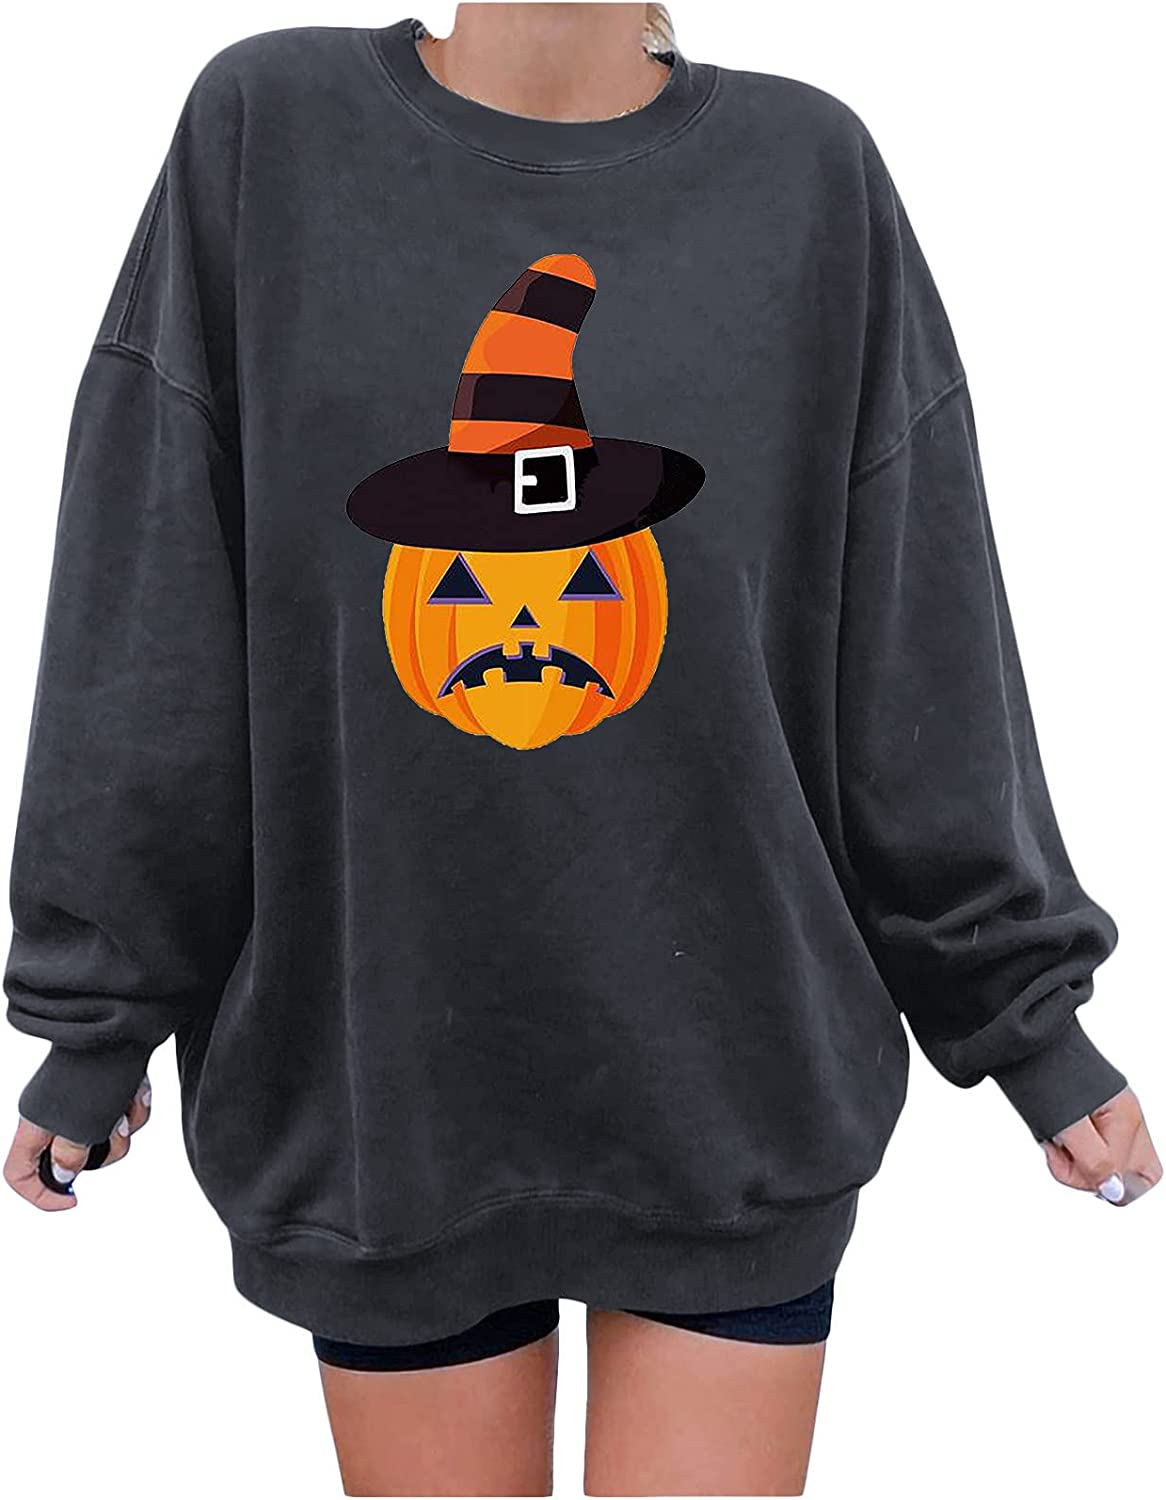 Halloween Clothes for Women Safety and trust Fall Casual High material Tr Long Neck Sleeve Crew